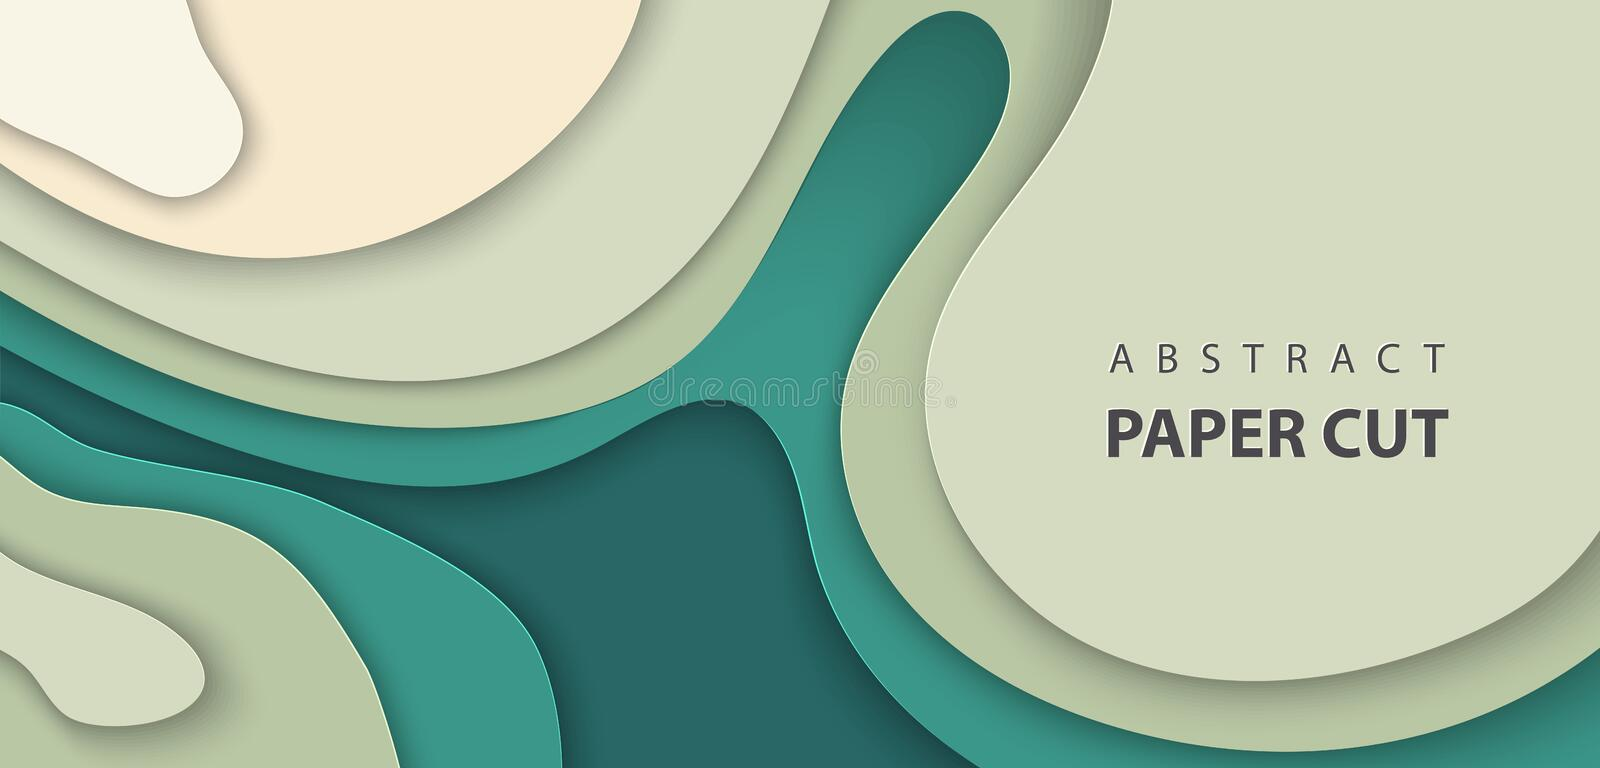 Vector background with deep green color paper cut waves shapes. 3D abstract paper art style, design layout vector illustration